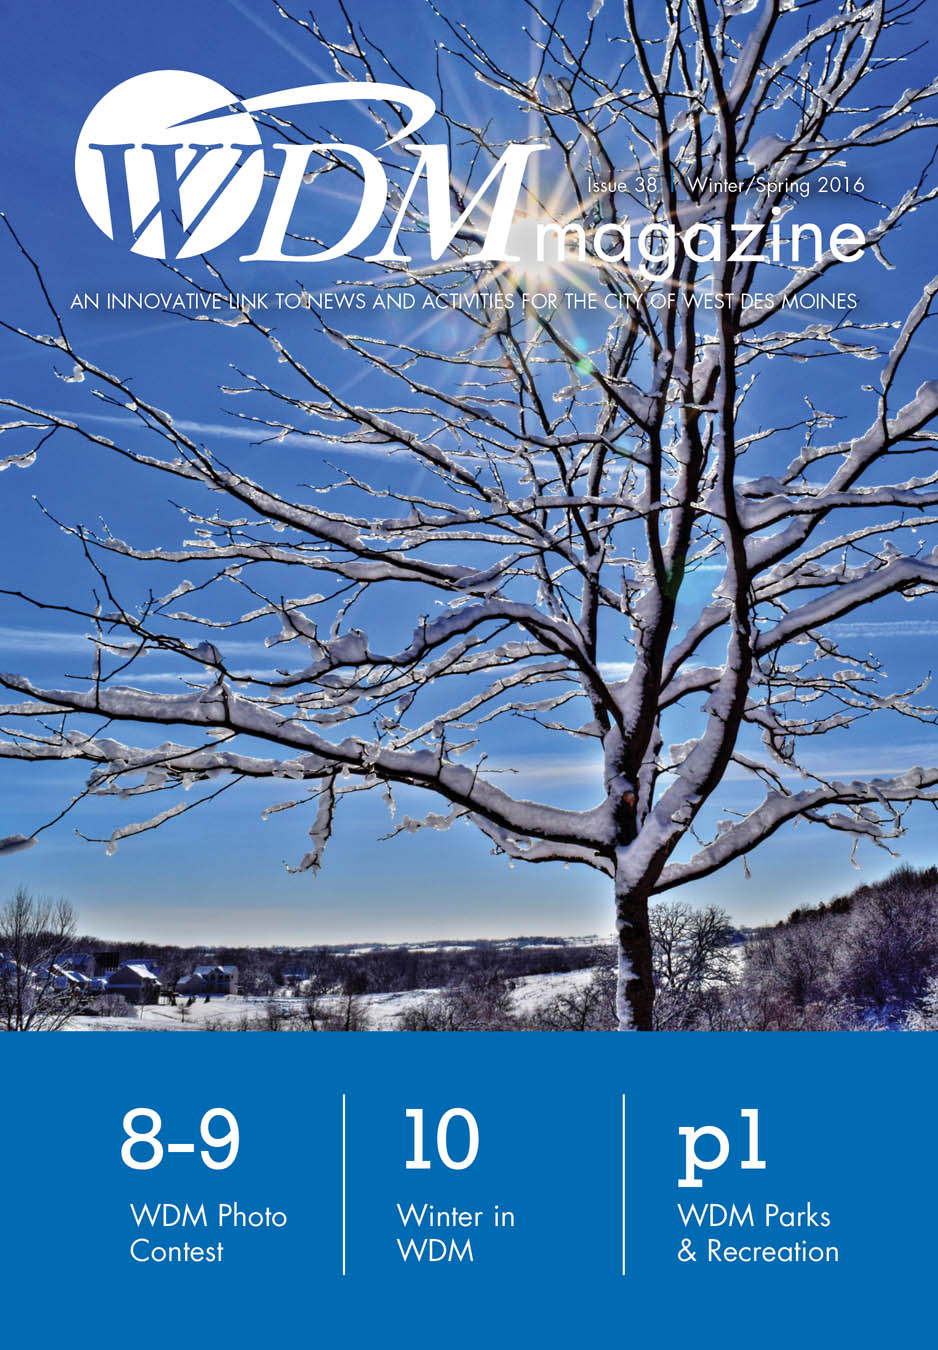 WDMMagCover_38_LR